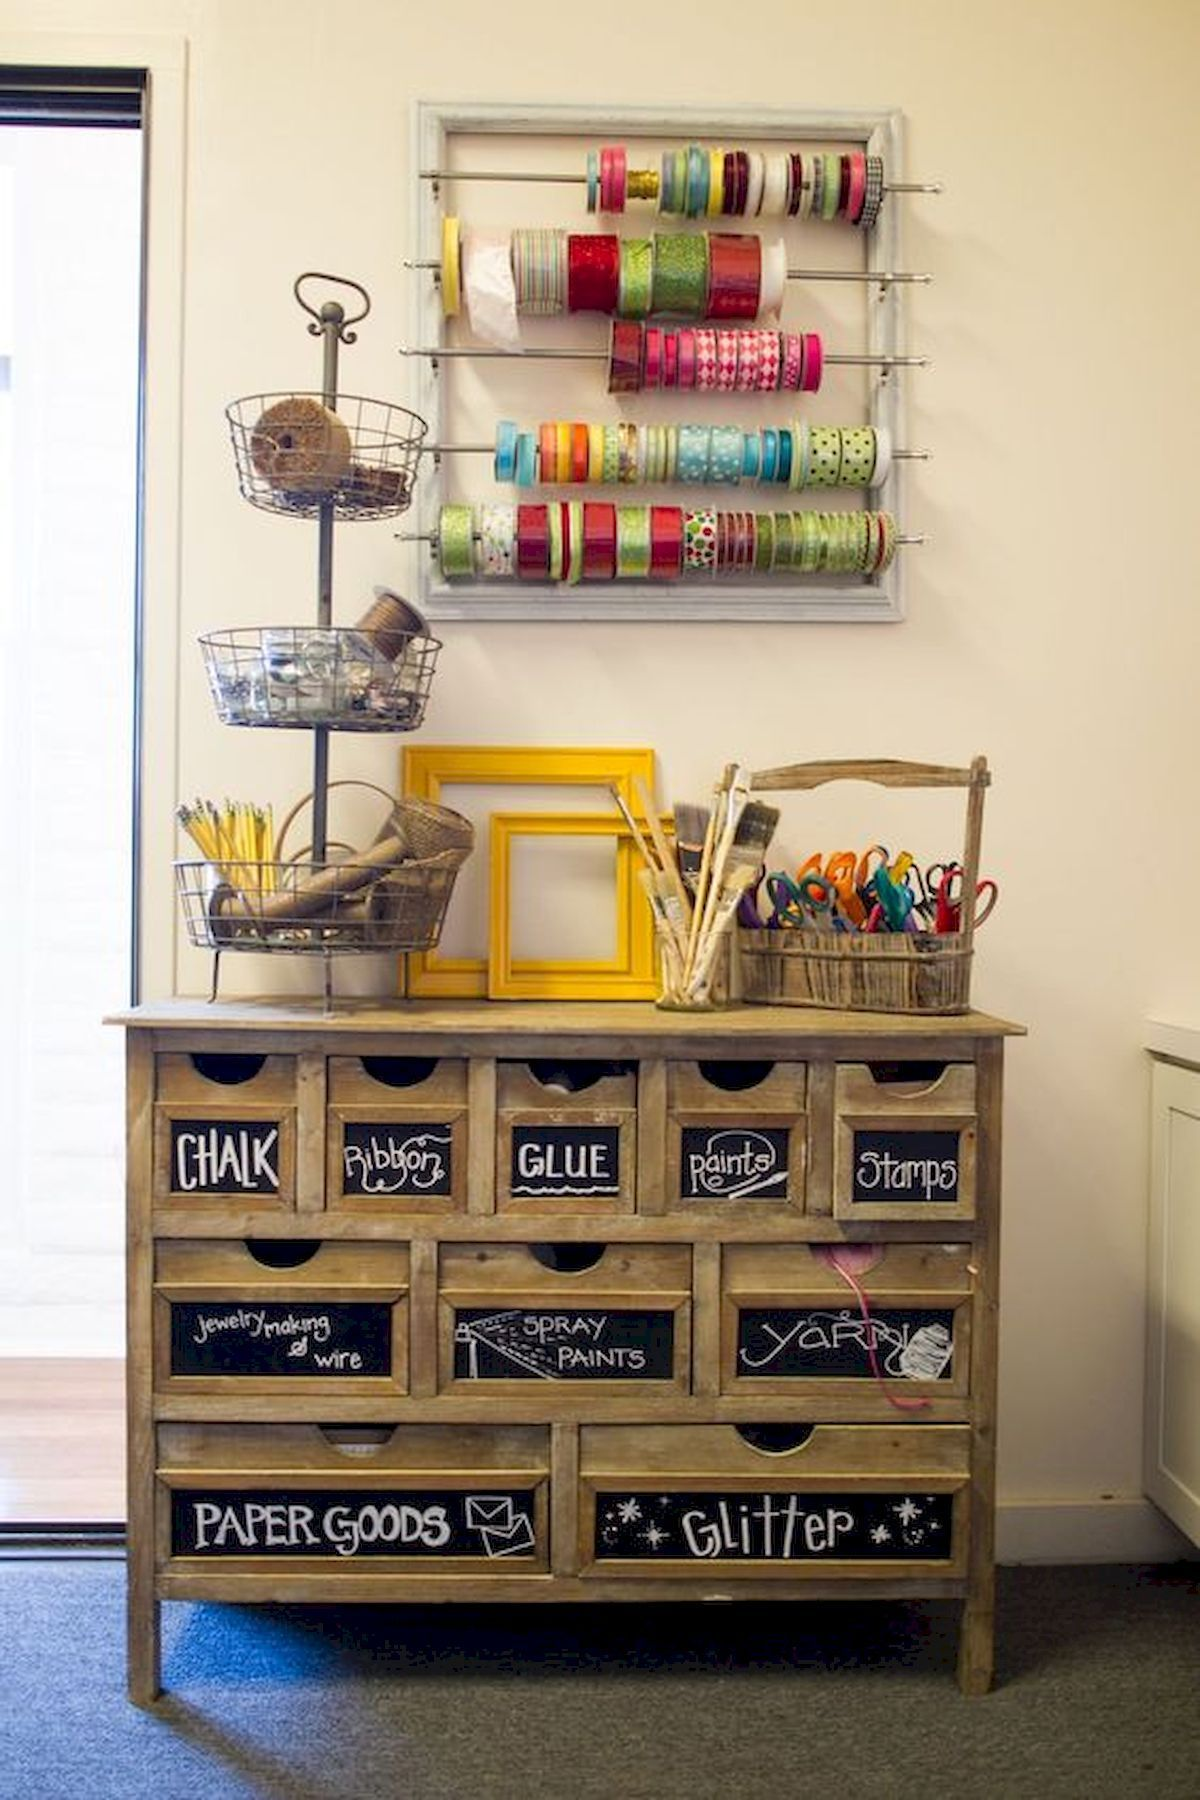 Pin By Carole Loftus On Craft Rooms Organization In 2020 Craft